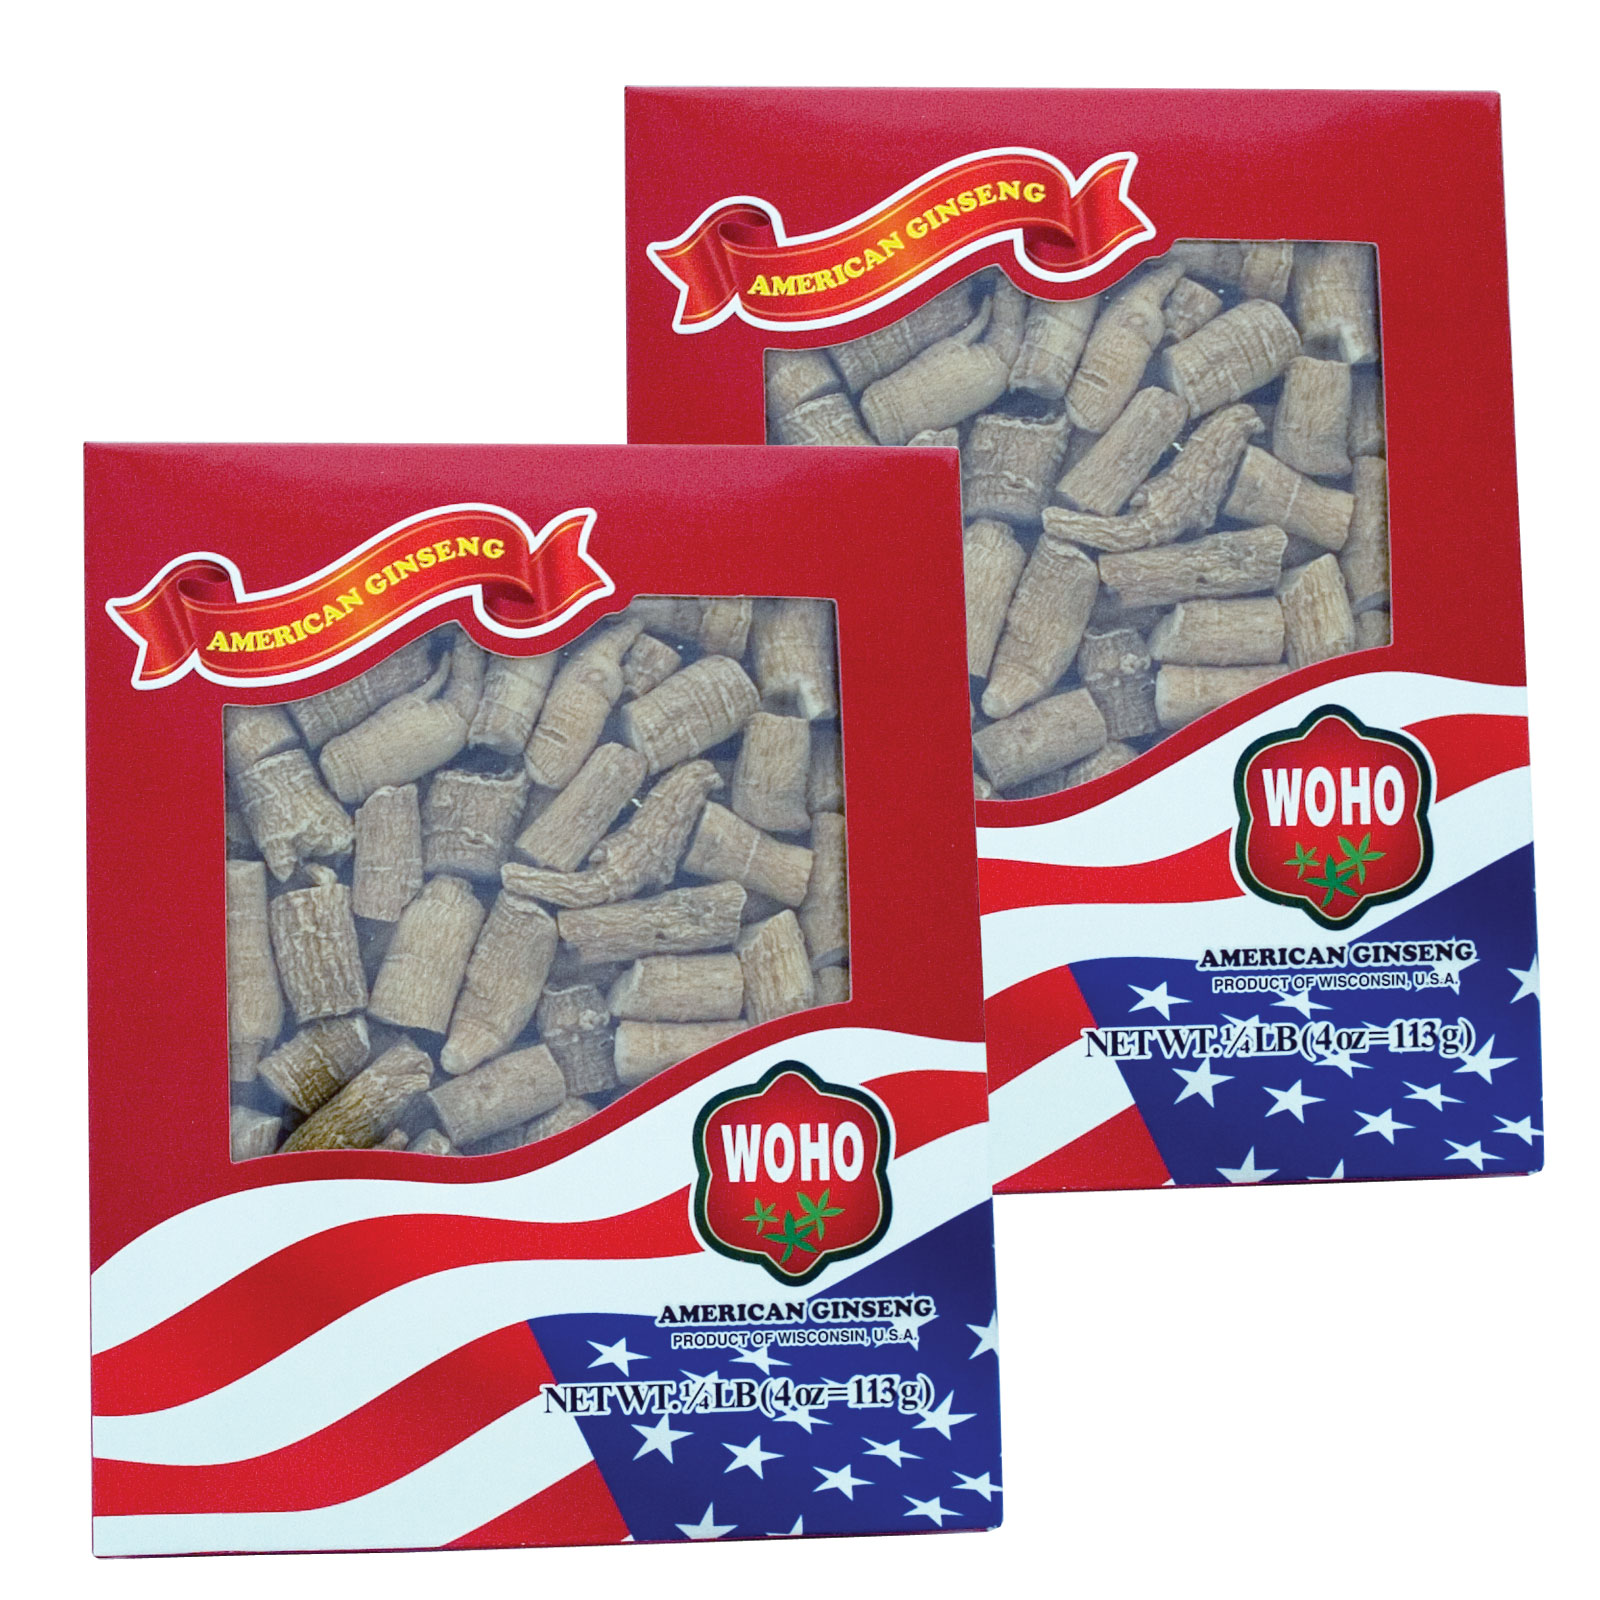 Special Bundle: 2 Boxes of WOHO #121.4 American Ginseng Roots Prong Large 4oz Box